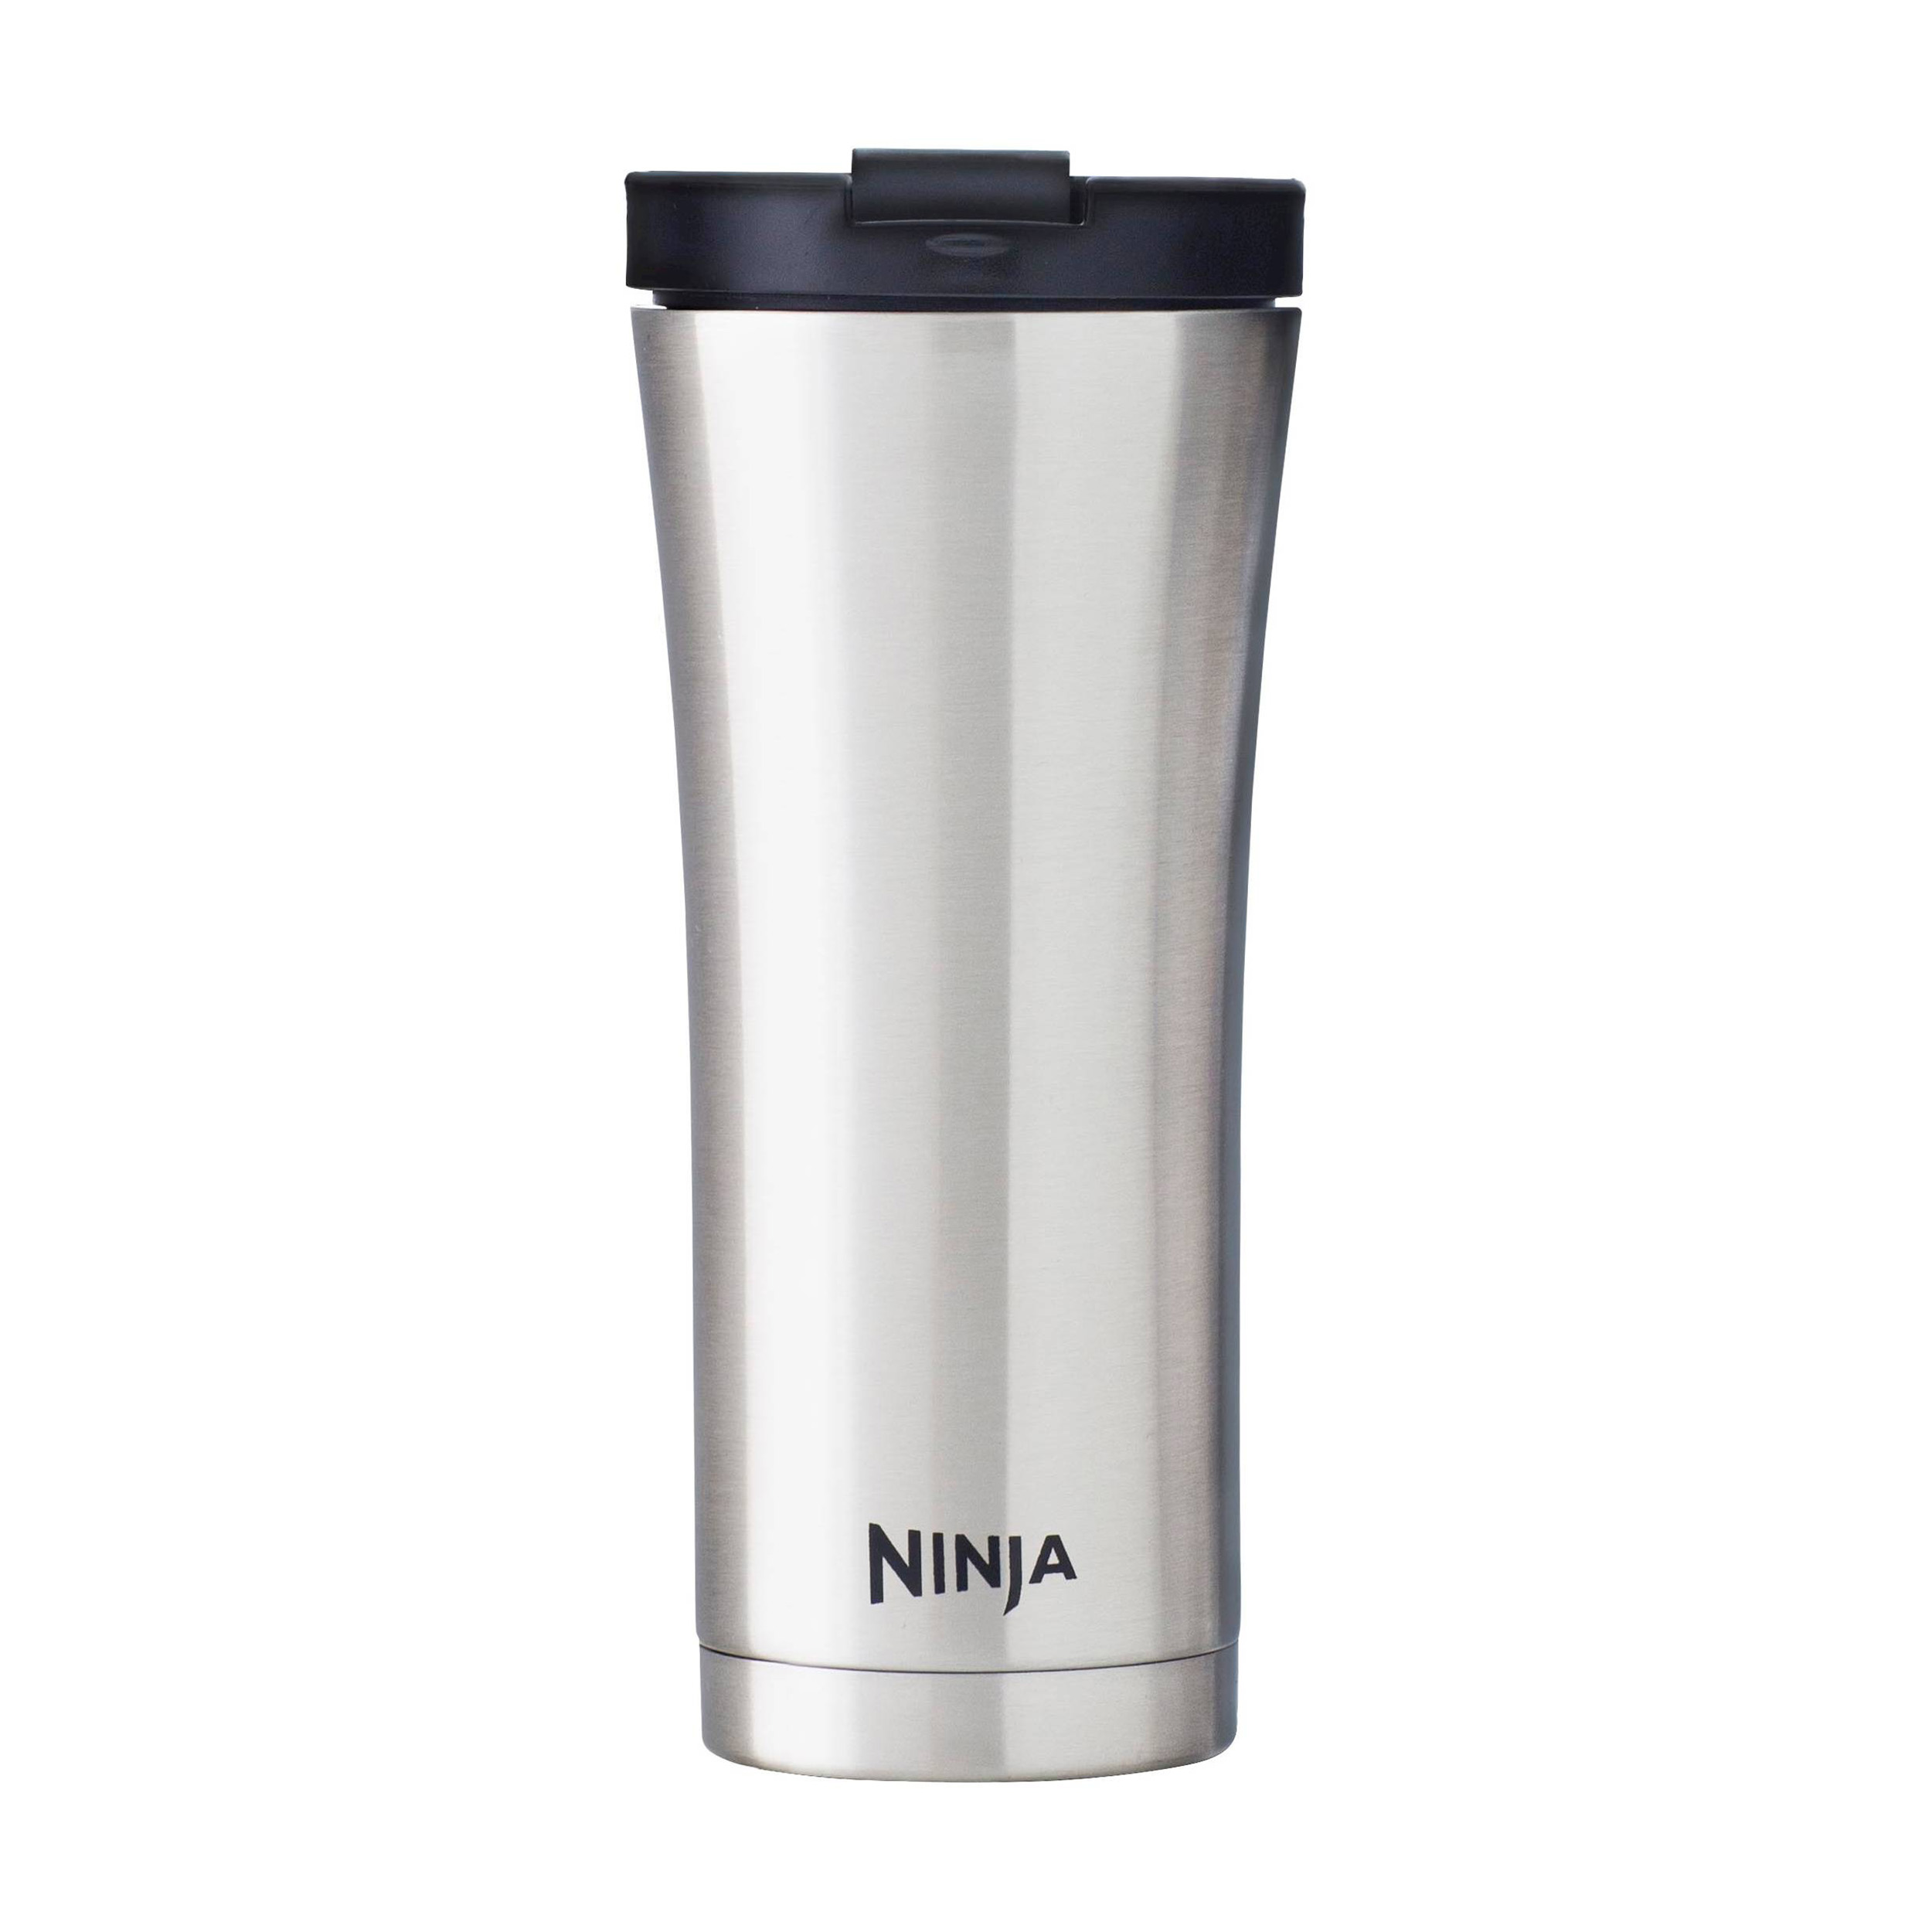 ninja 16 oz stainless steel double walled hot cold coffee travel mug 2 pack ebay. Black Bedroom Furniture Sets. Home Design Ideas